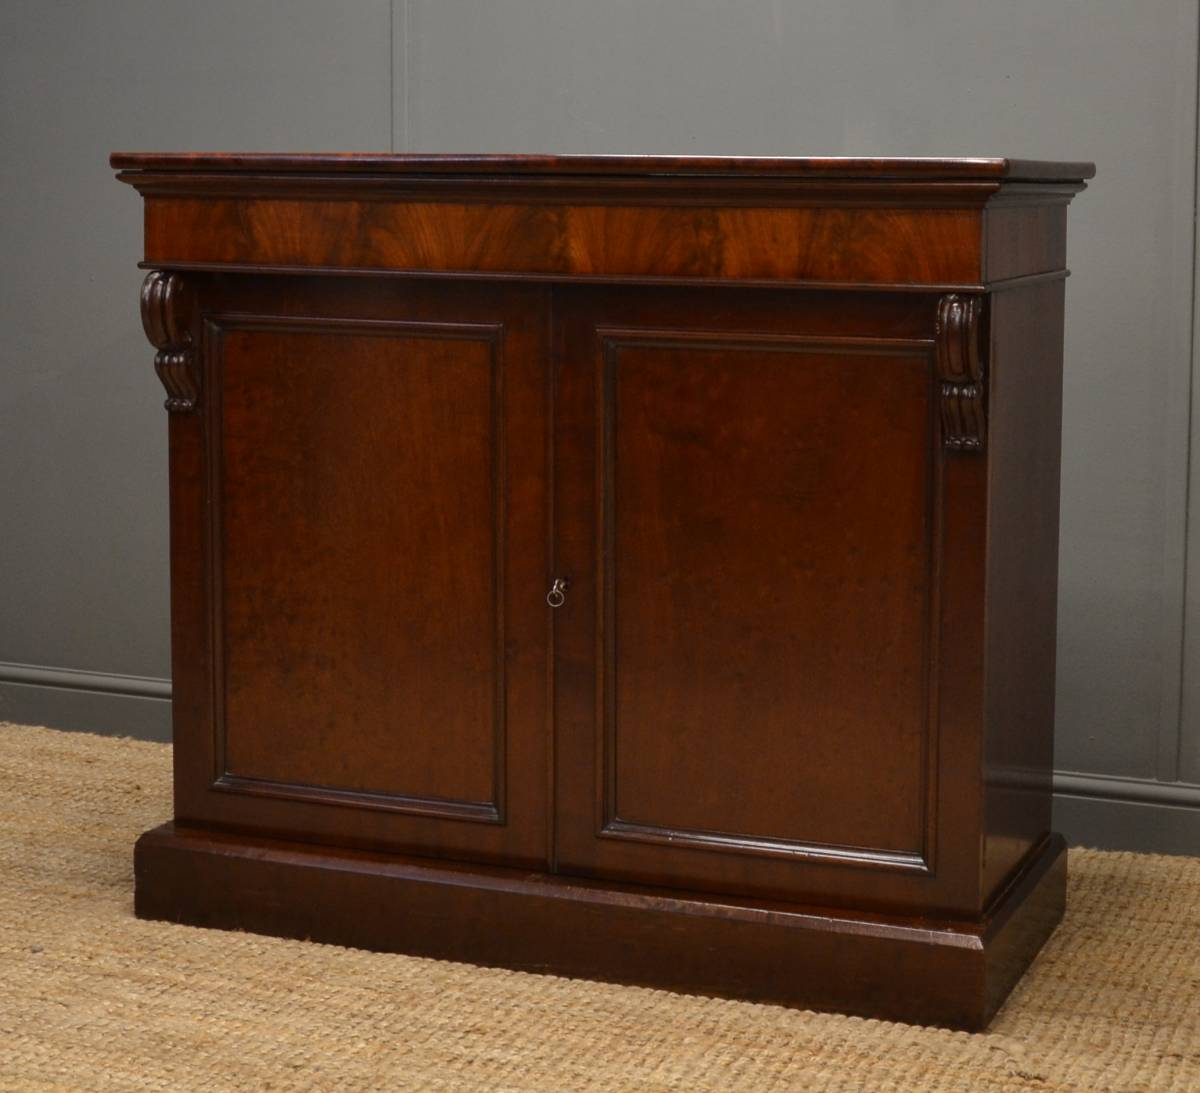 Quality, Regency, Rare, Plum Pudding Mahogany, Antique Cupboard.